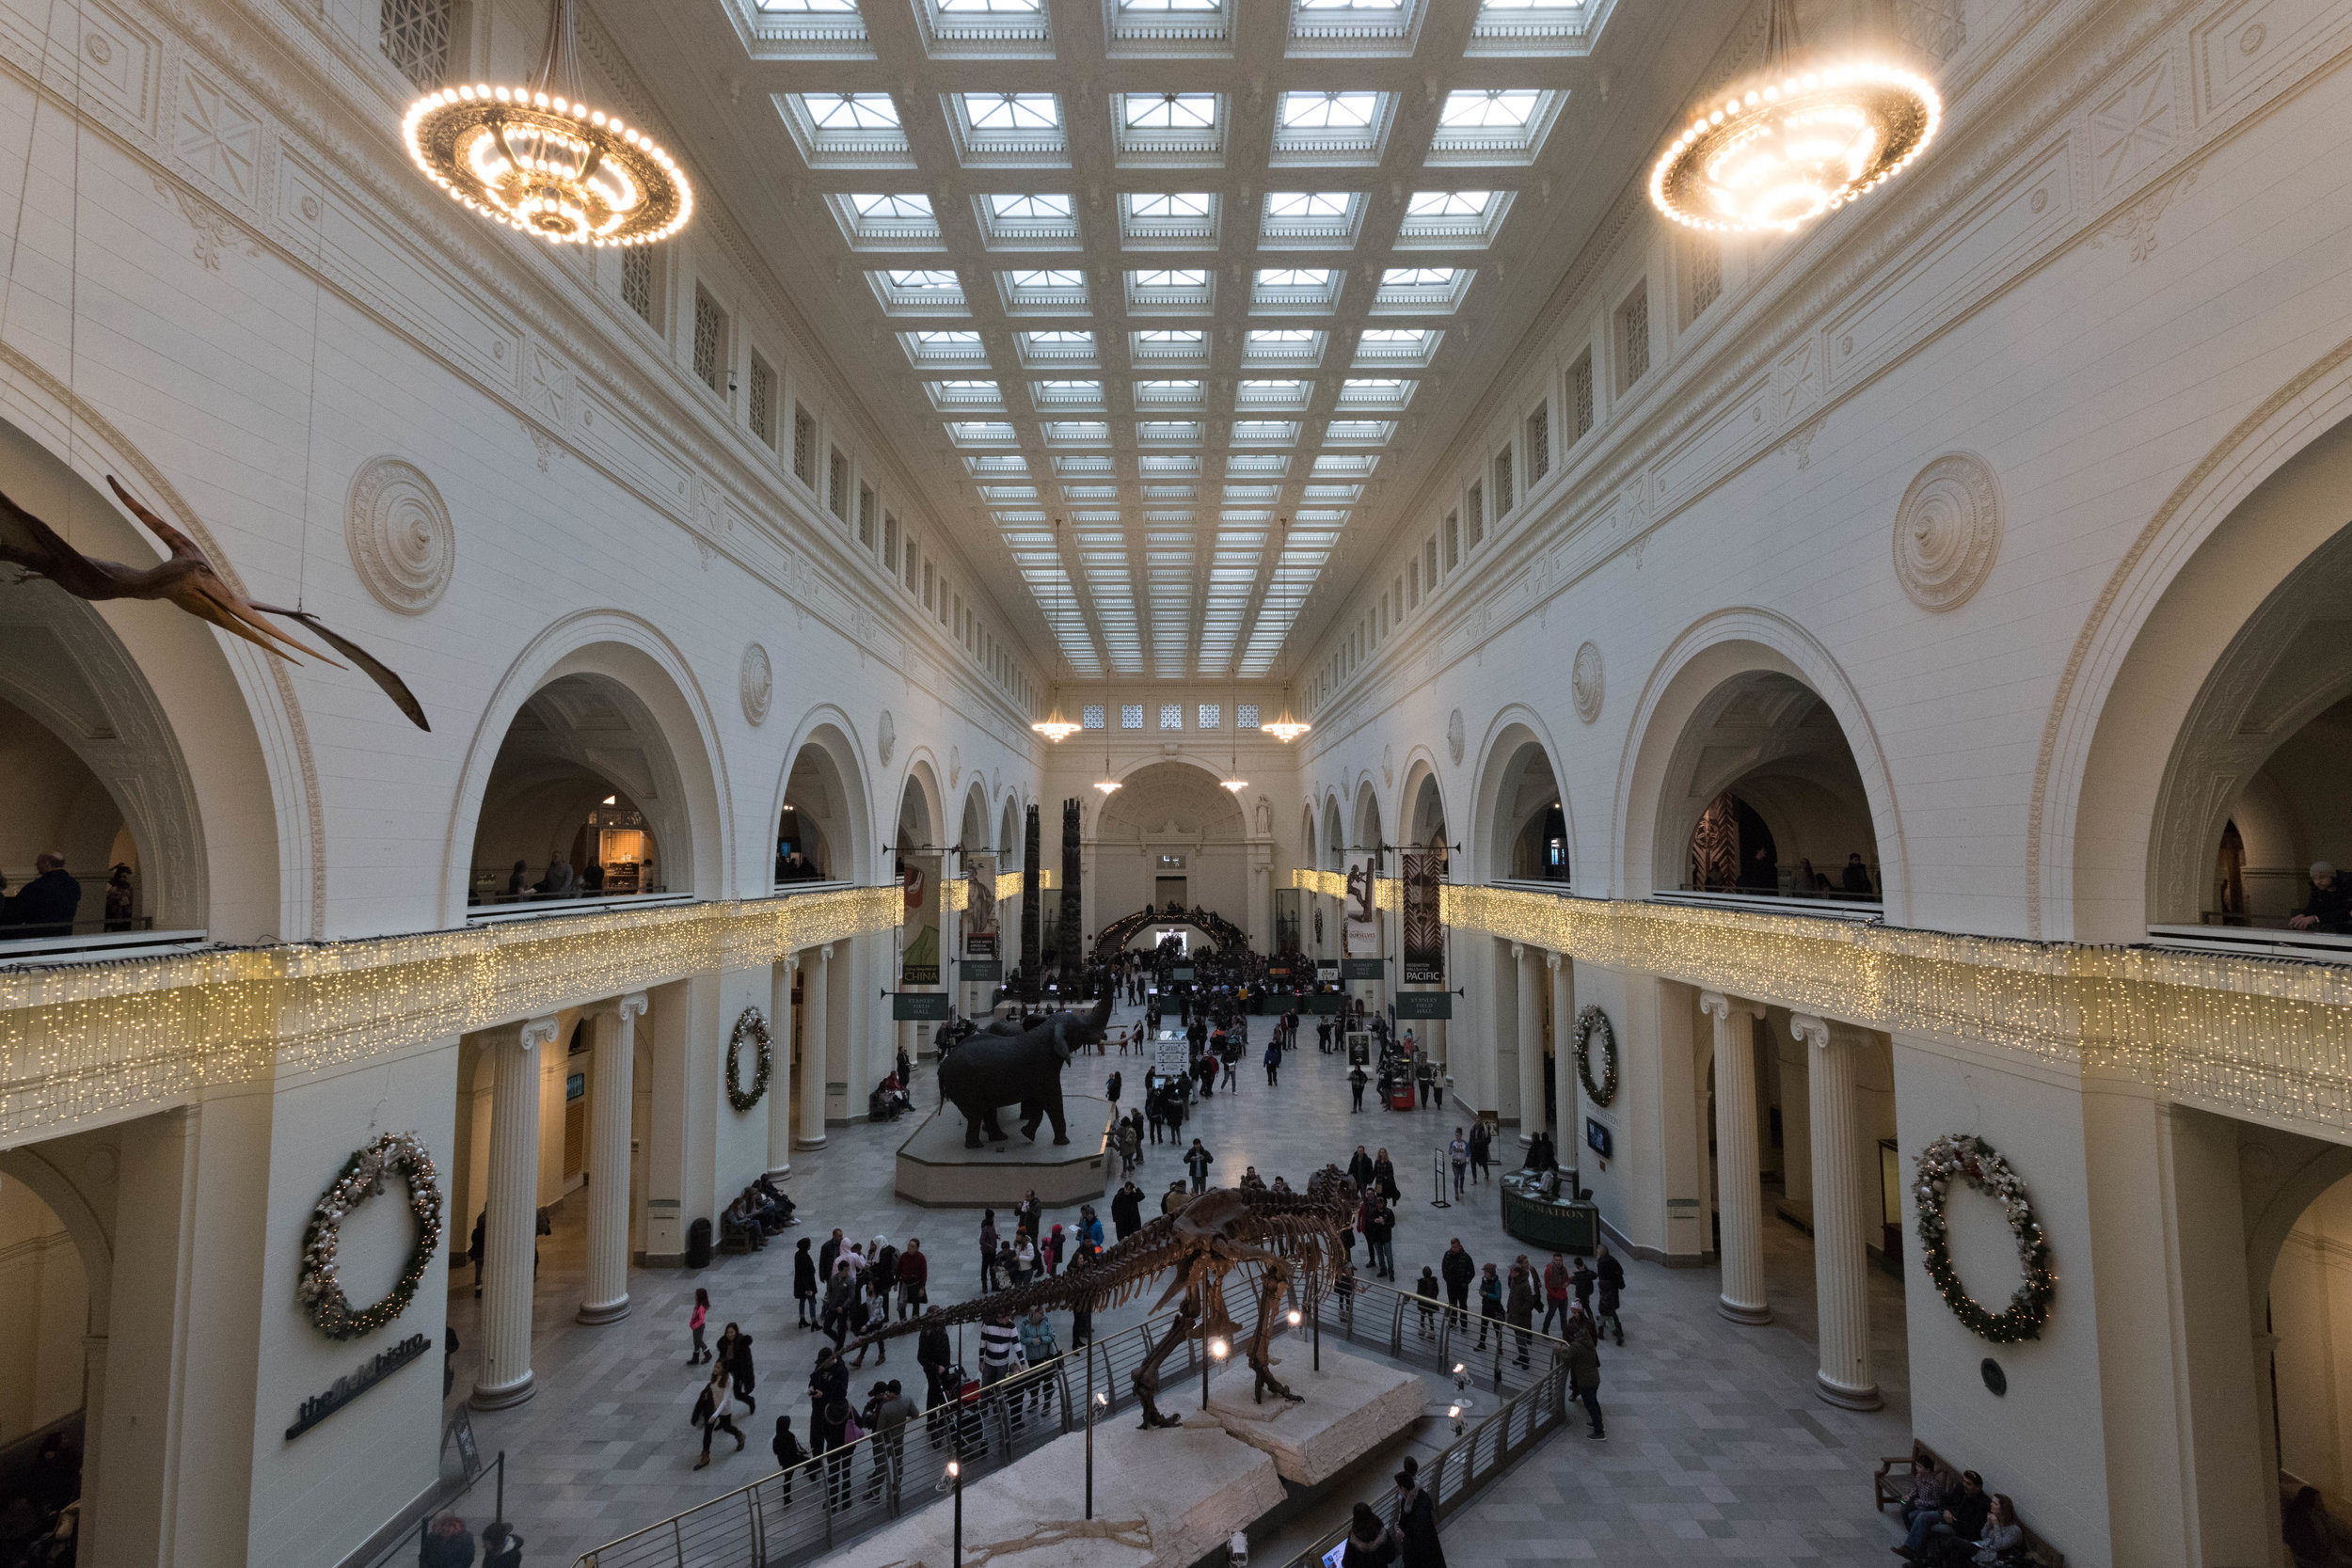 january 2, 2018  field museum - chicago, illinois